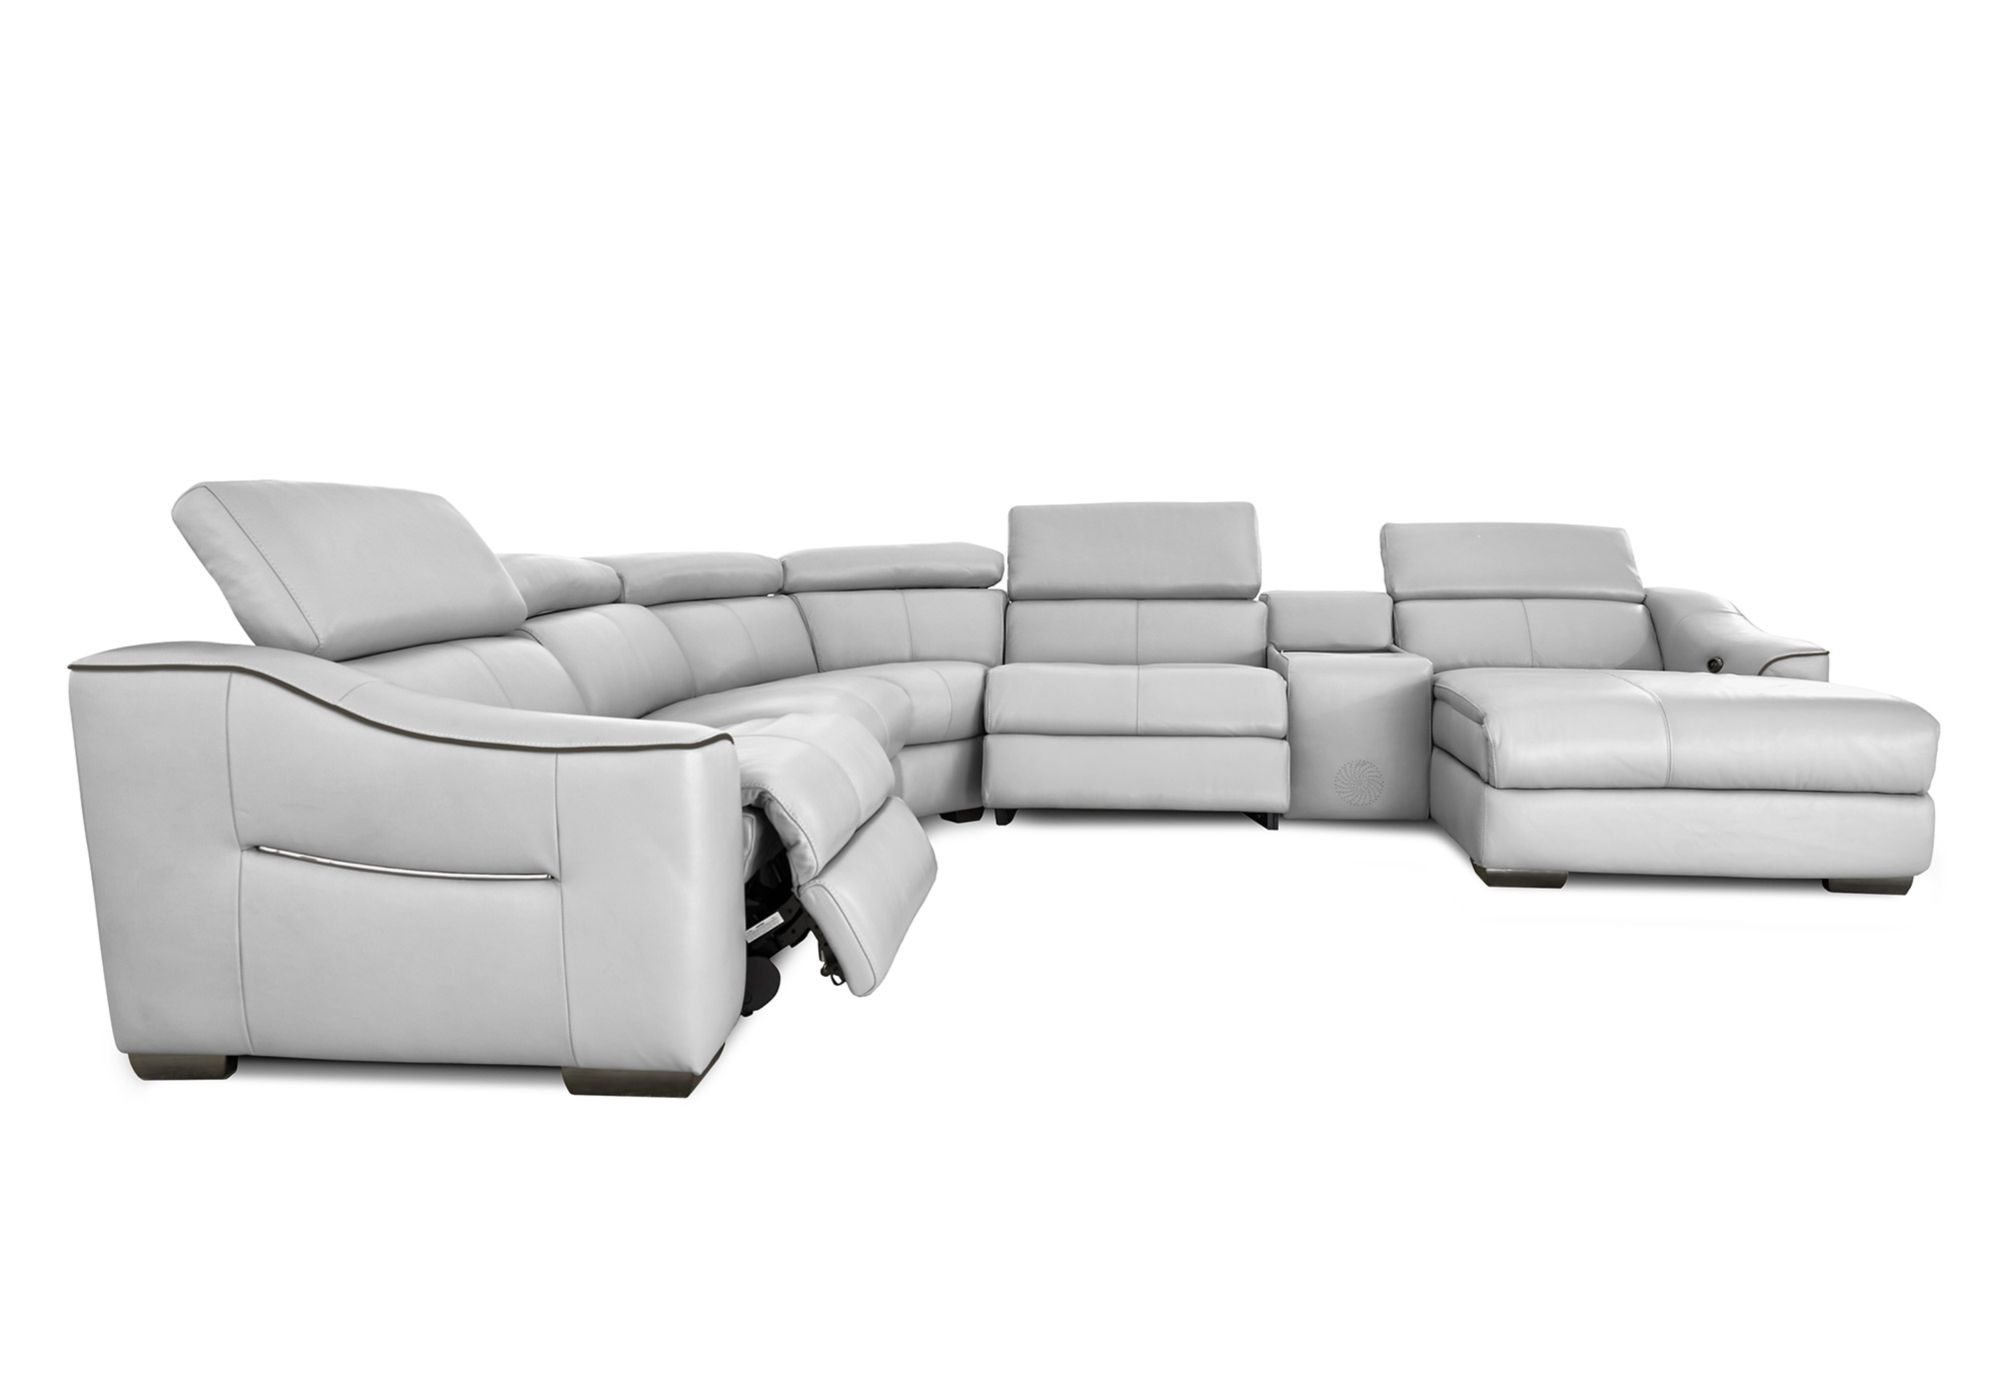 chaise recliner sofa set design in philippines rhf corner elixir gorgeous living room